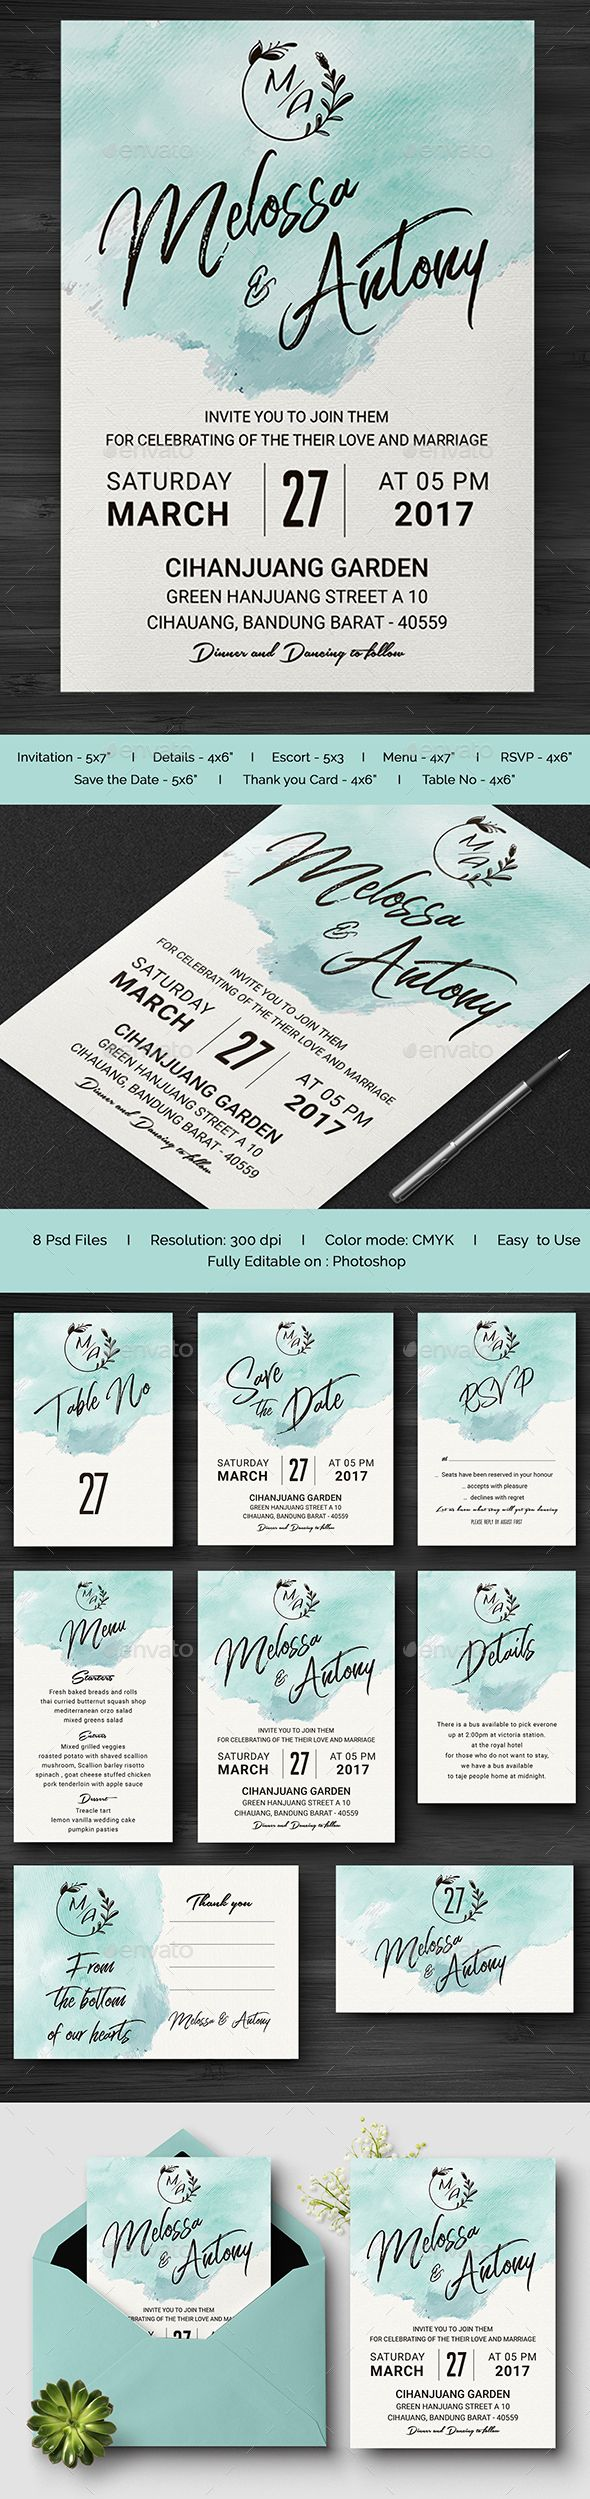 wedding invitation sample by email%0A Best     Wedding invitation templates ideas on Pinterest   Diy wedding  stationery  Wedding invitation wording templates and Wedding invitation  wording